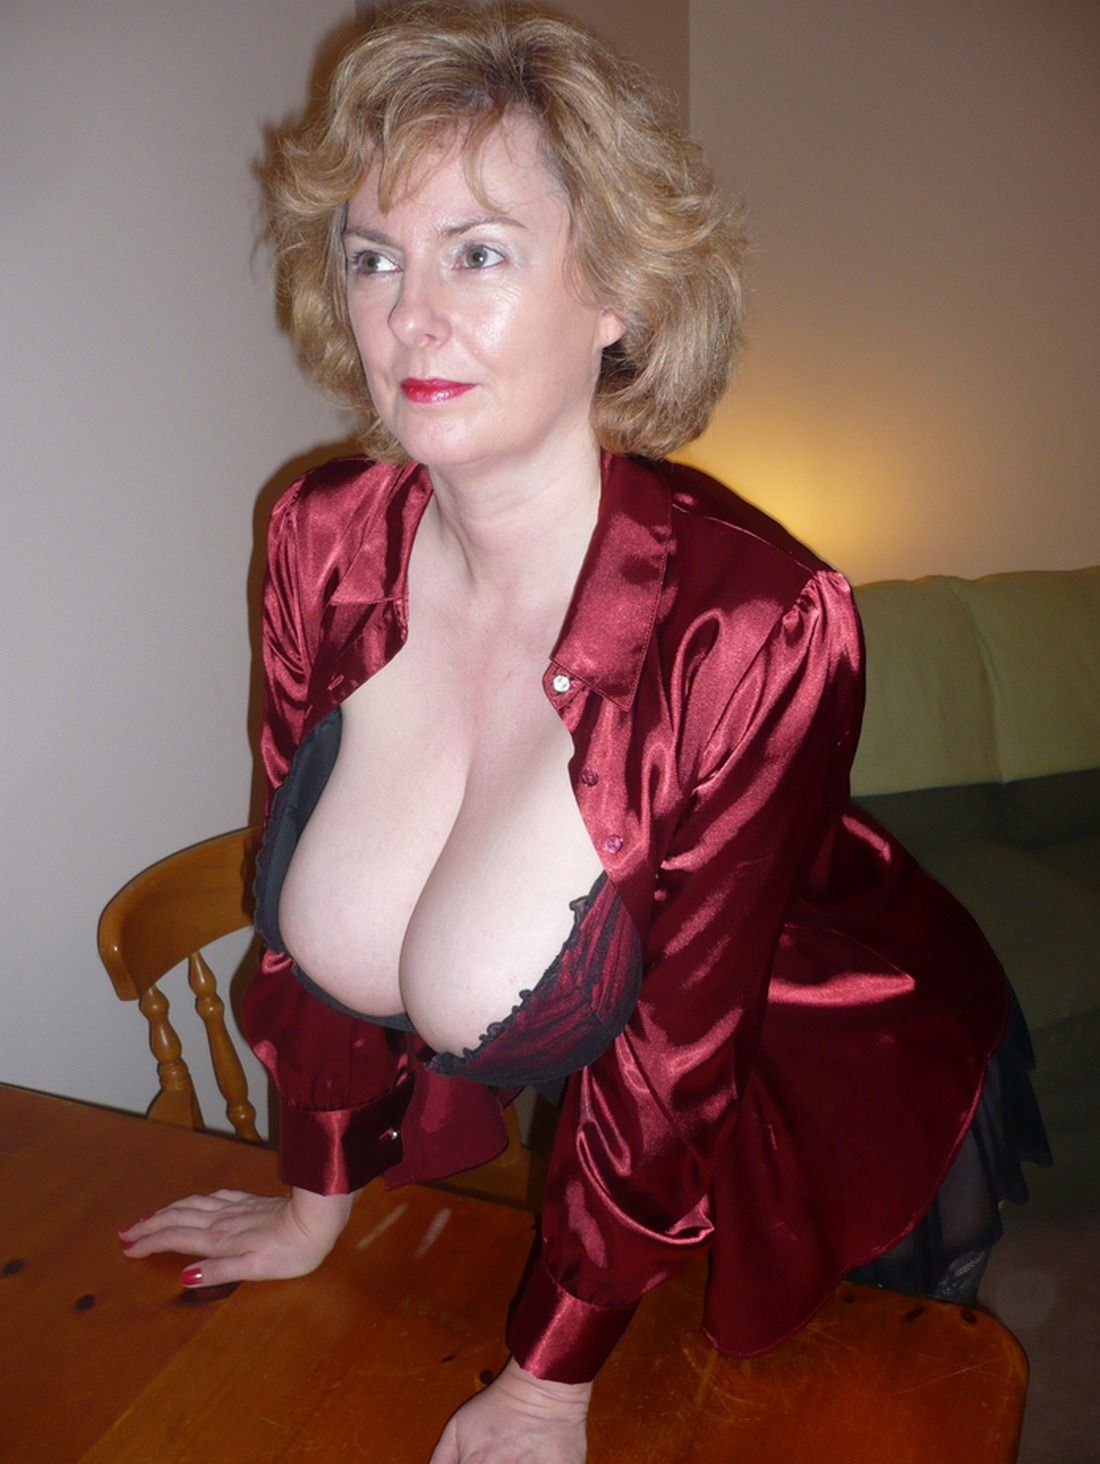 mature | laidiess | pinterest | satin, big naturals and curvy